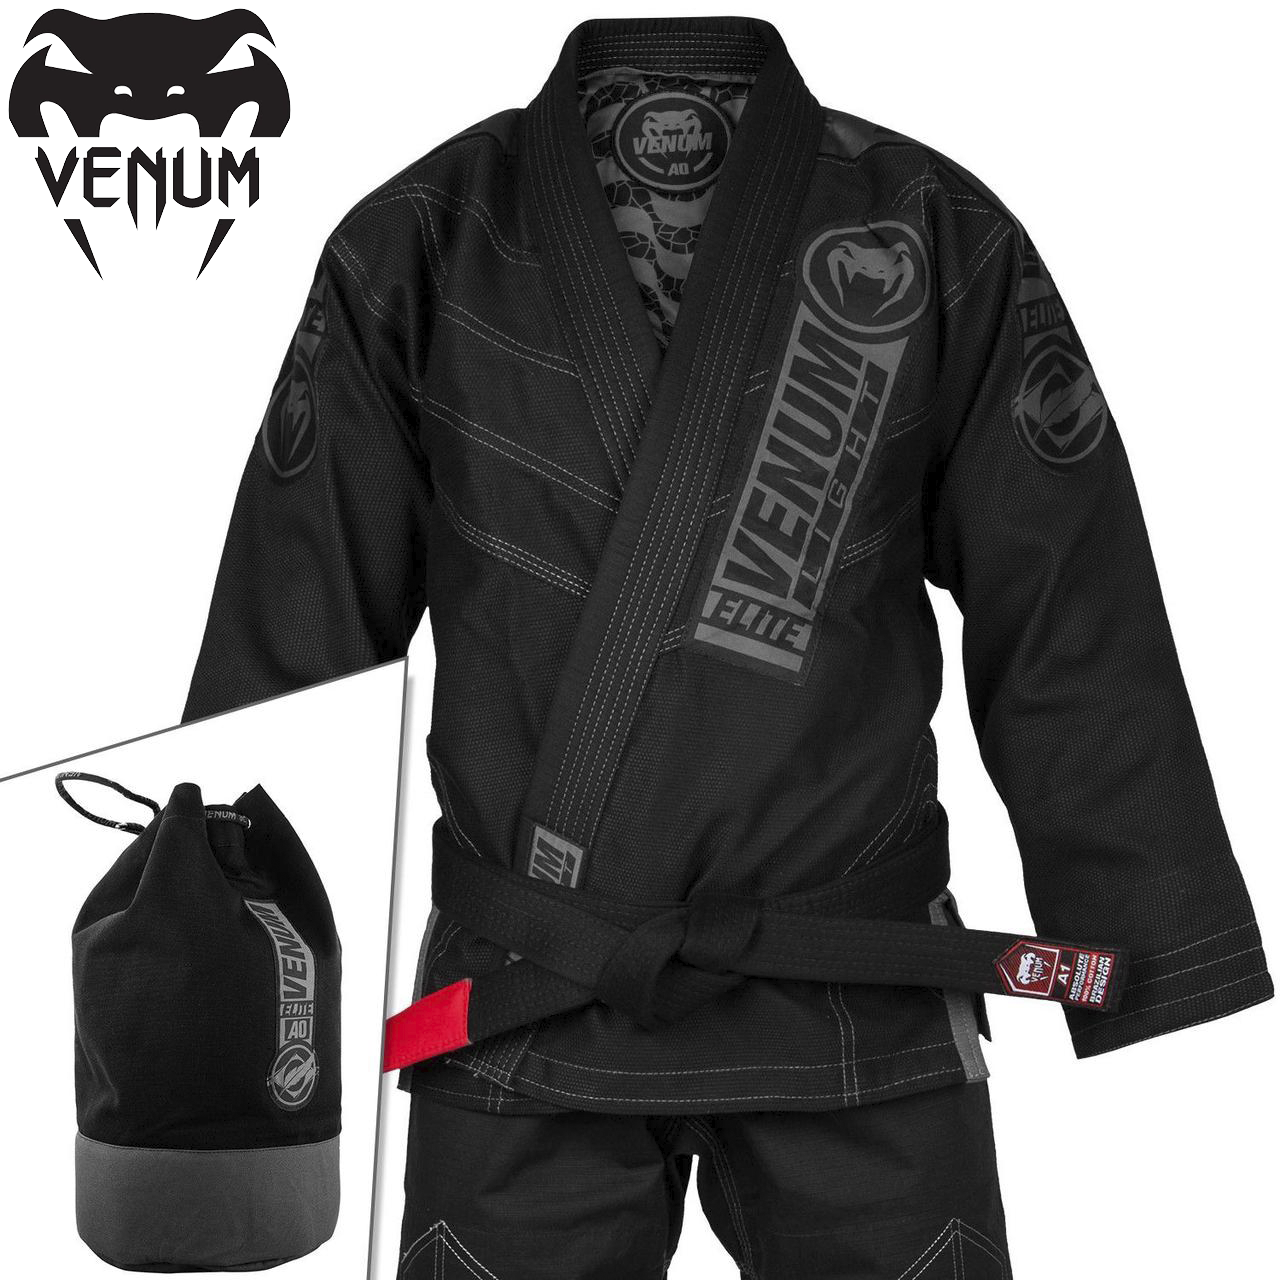 Кімоно для джиу-джитсу Venum Elite Light 2.0 BJJ GI Black Black